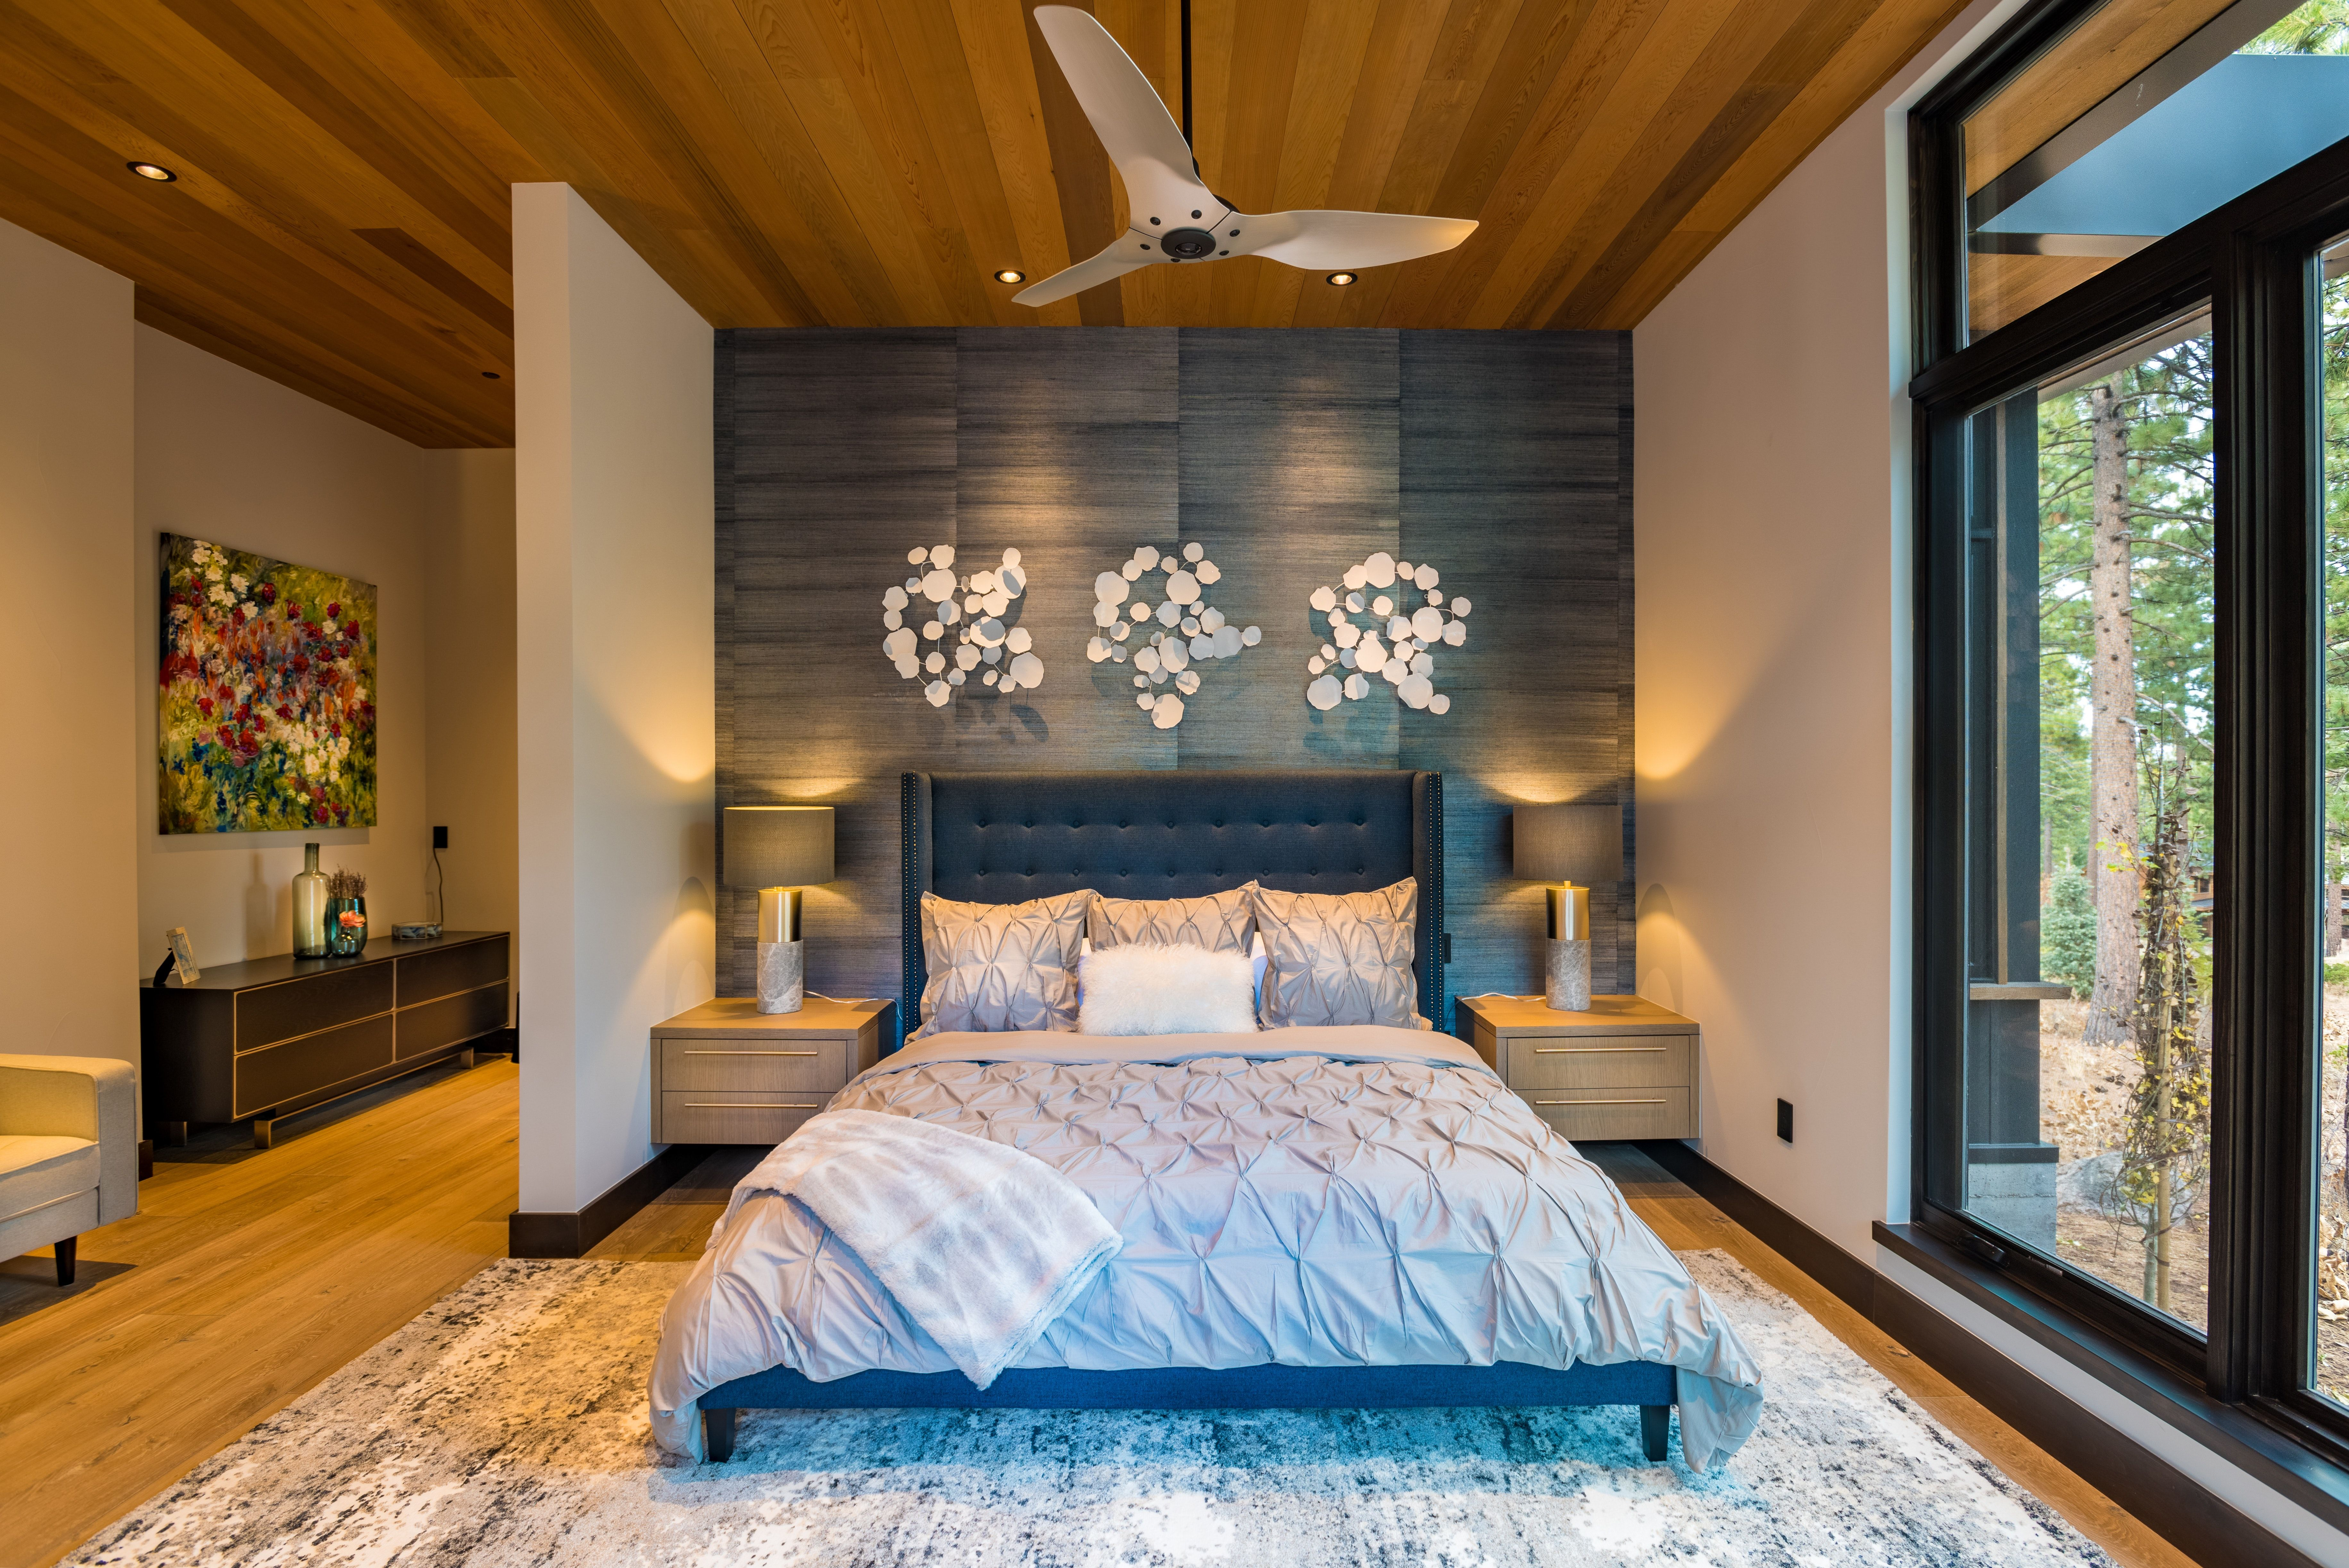 A Luxuriously Colorful and Textured Master Bedroom with